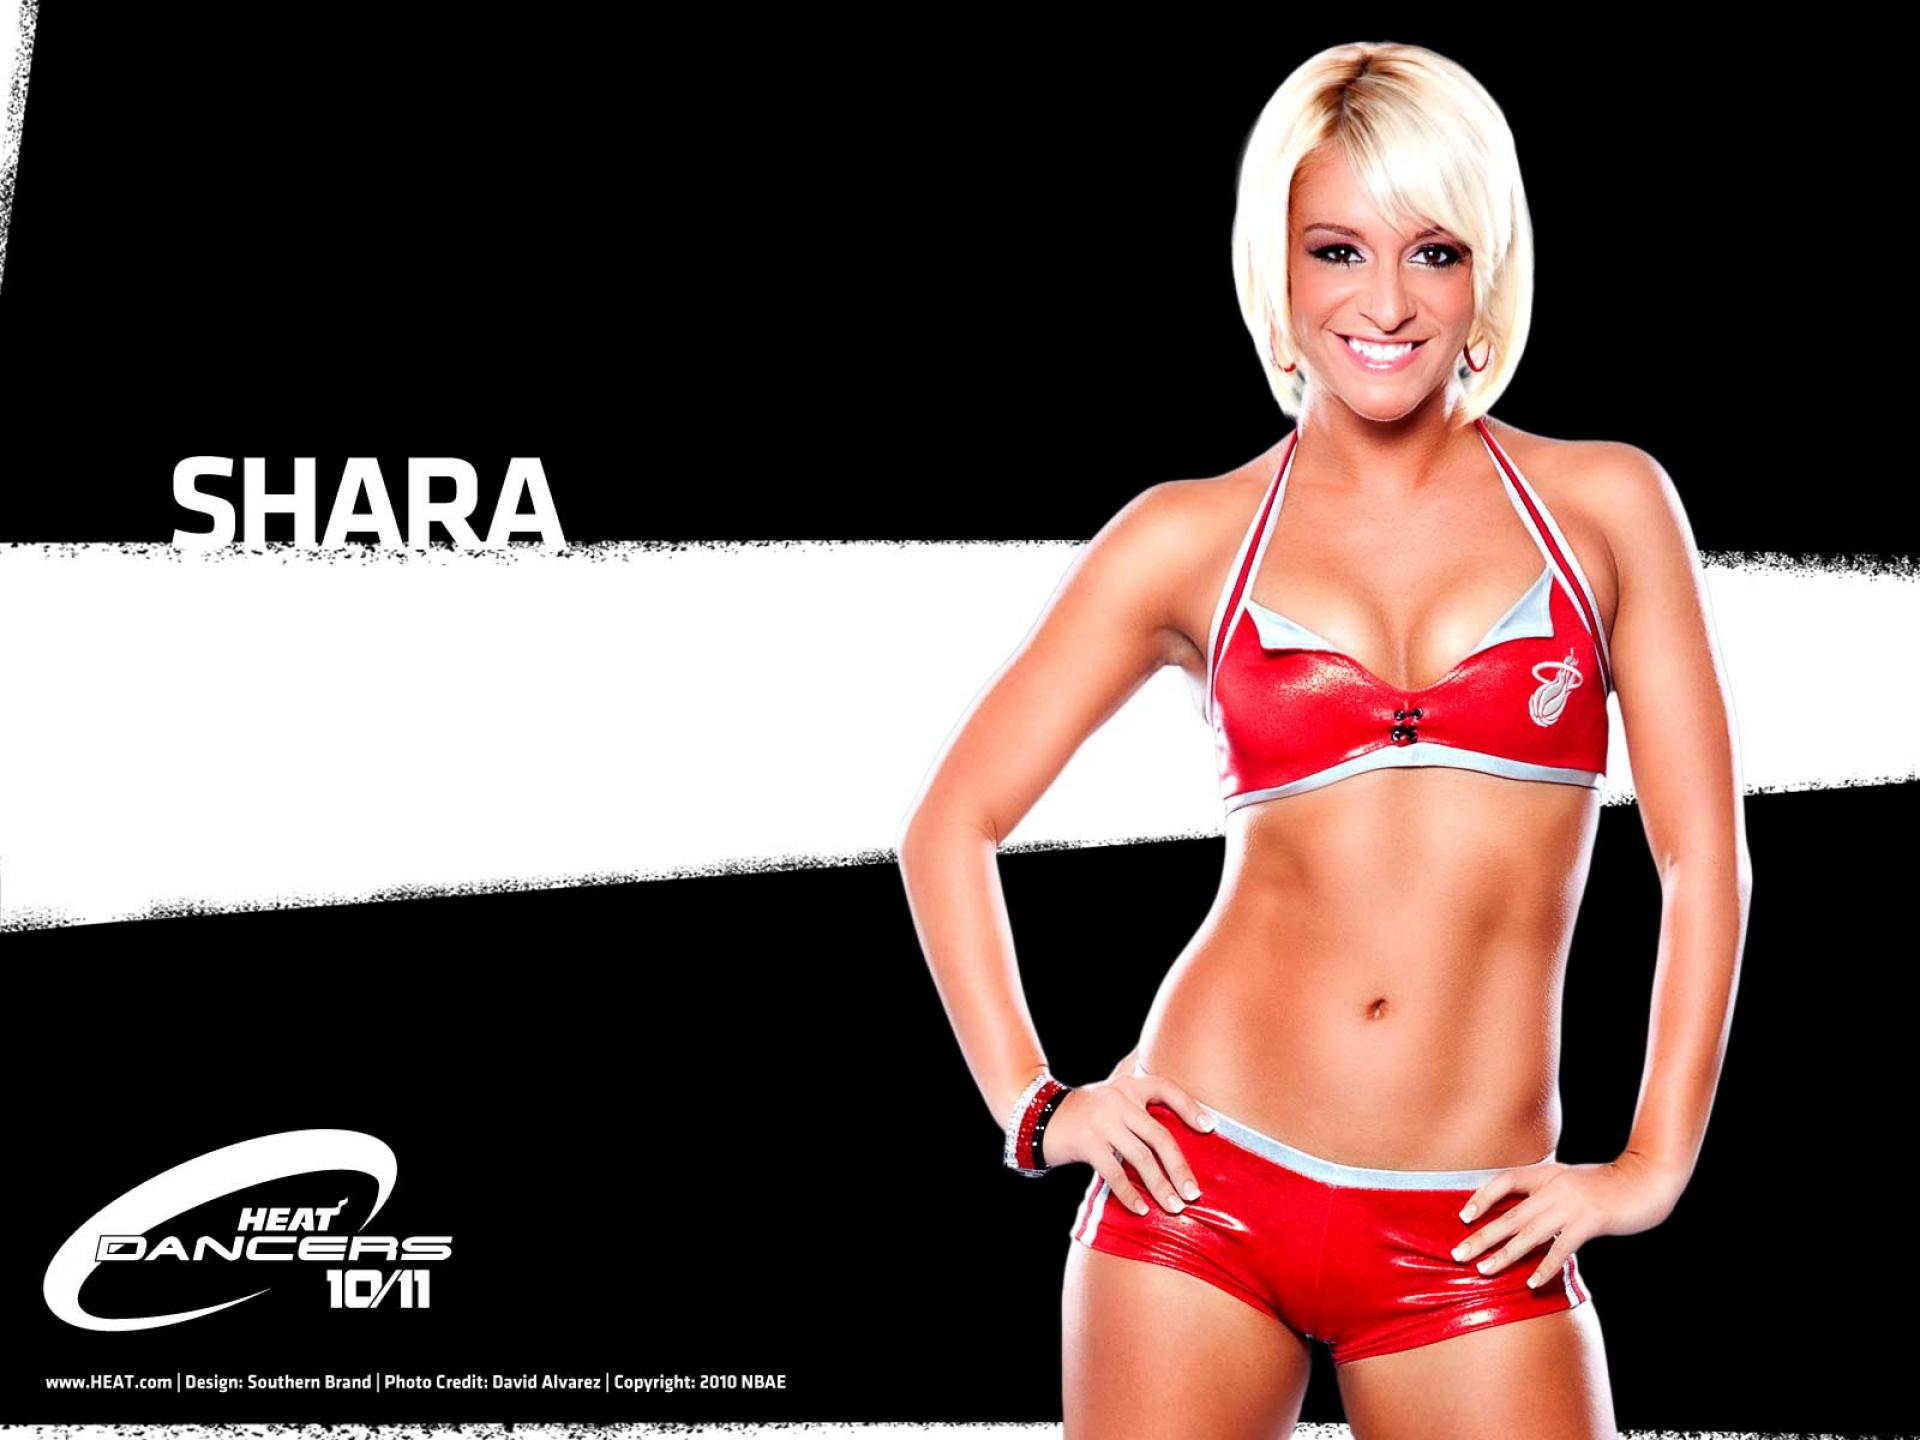 NBA Dancers   Miami Heat   shara   United States  USA Pictures HD Wallpaper